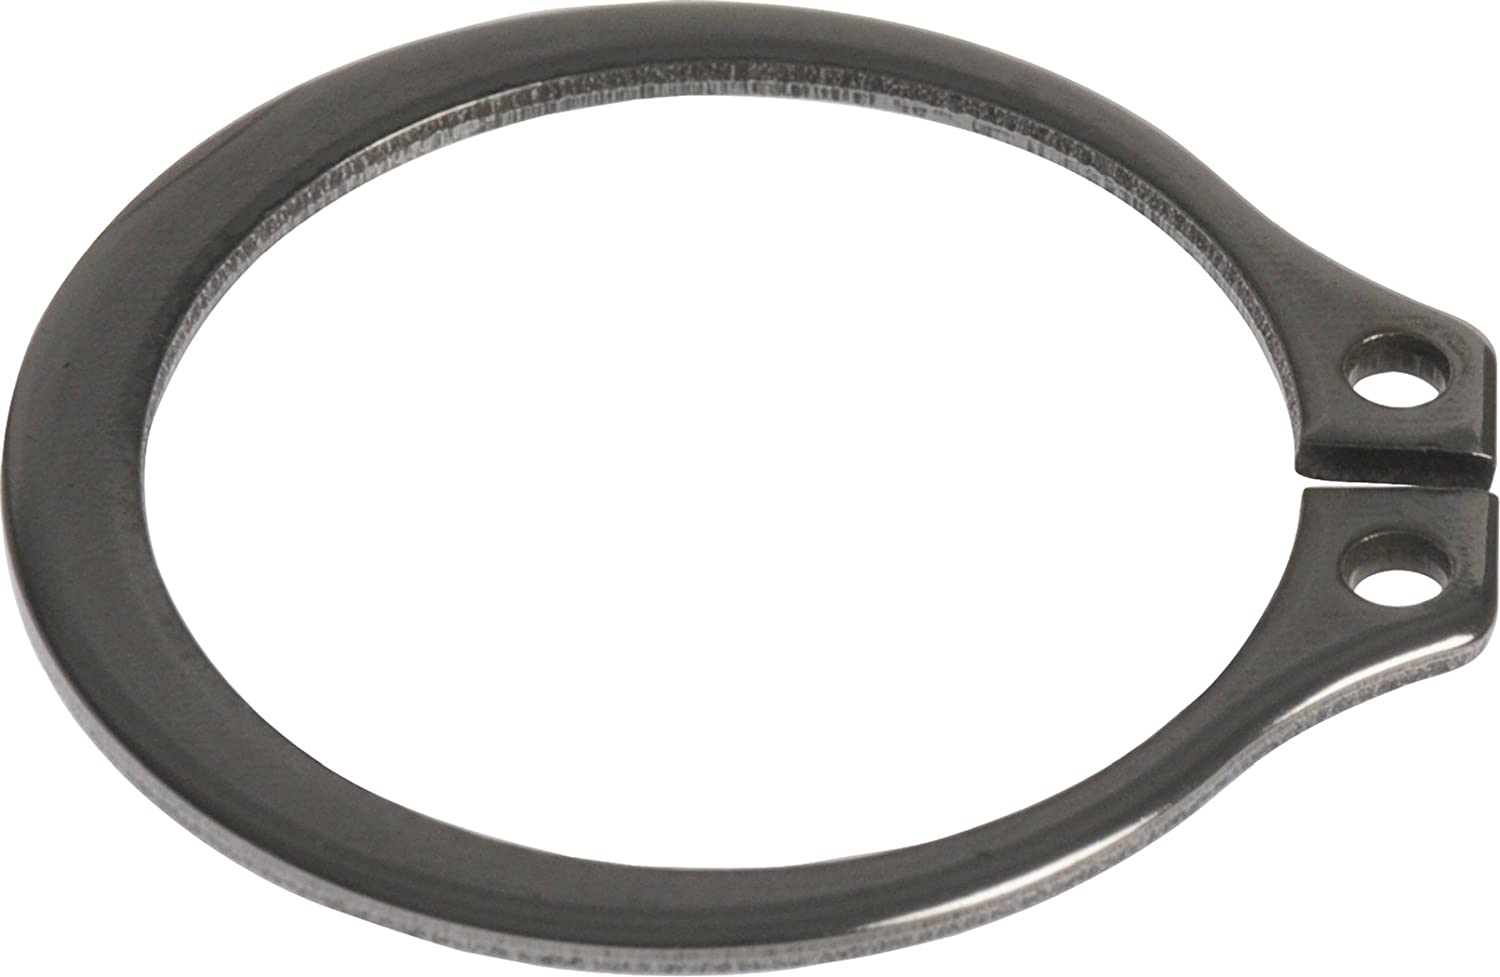 7-Pack The Hillman Group 45201 3//4-Inch Stainless Steel External Retaining Ring